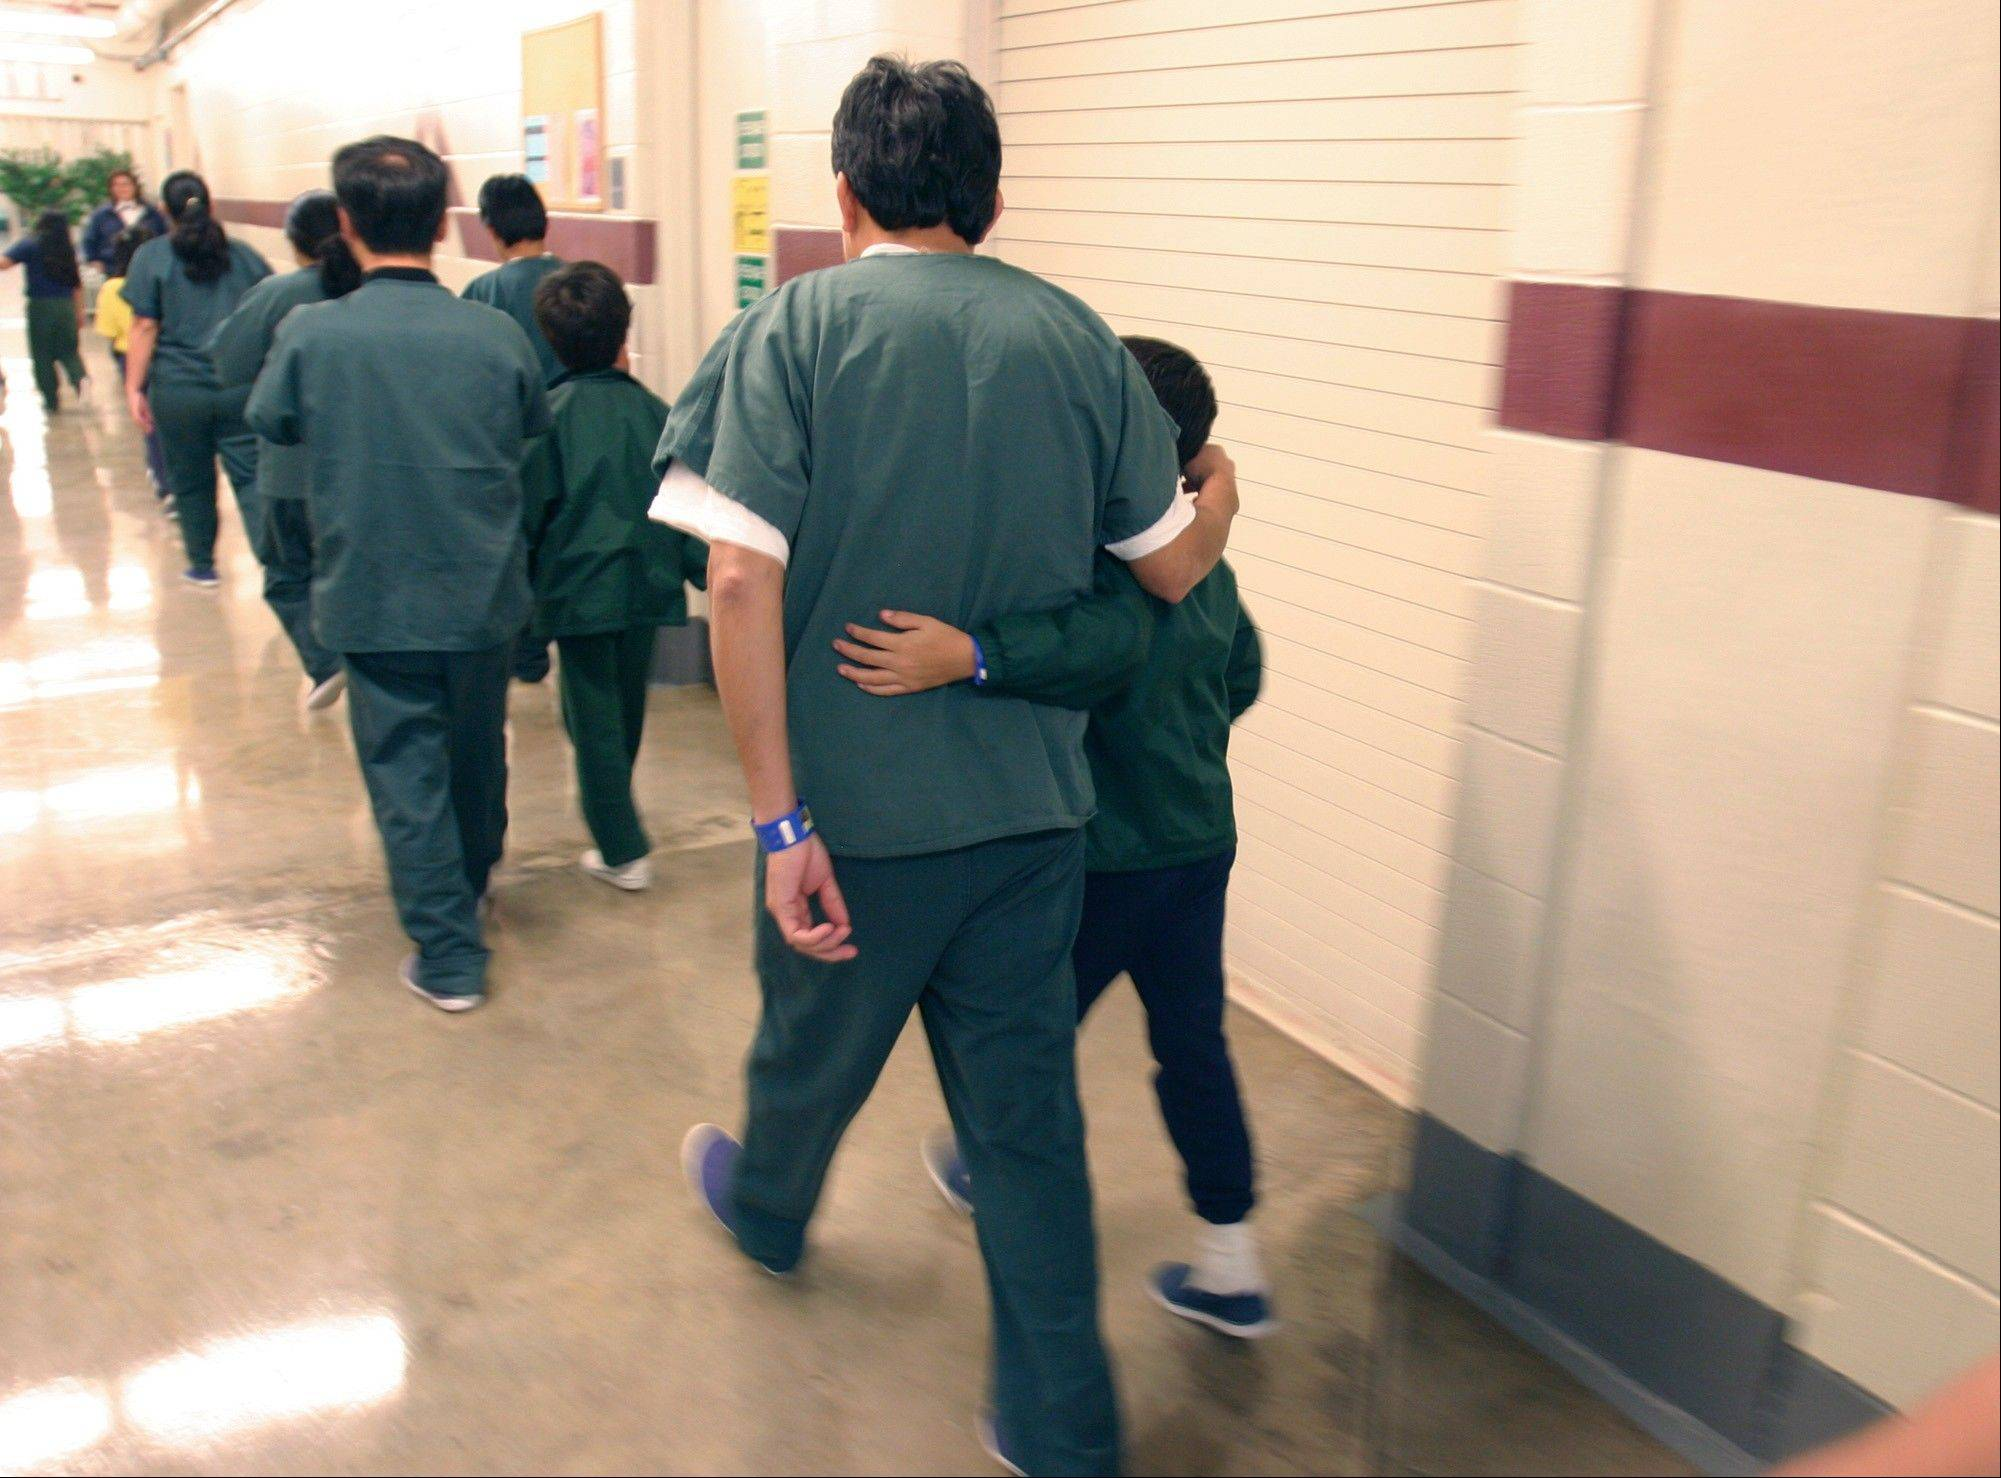 Family detainees walkg down the hall at the T. Don Hutto Residential Center in Taylor, Texas.